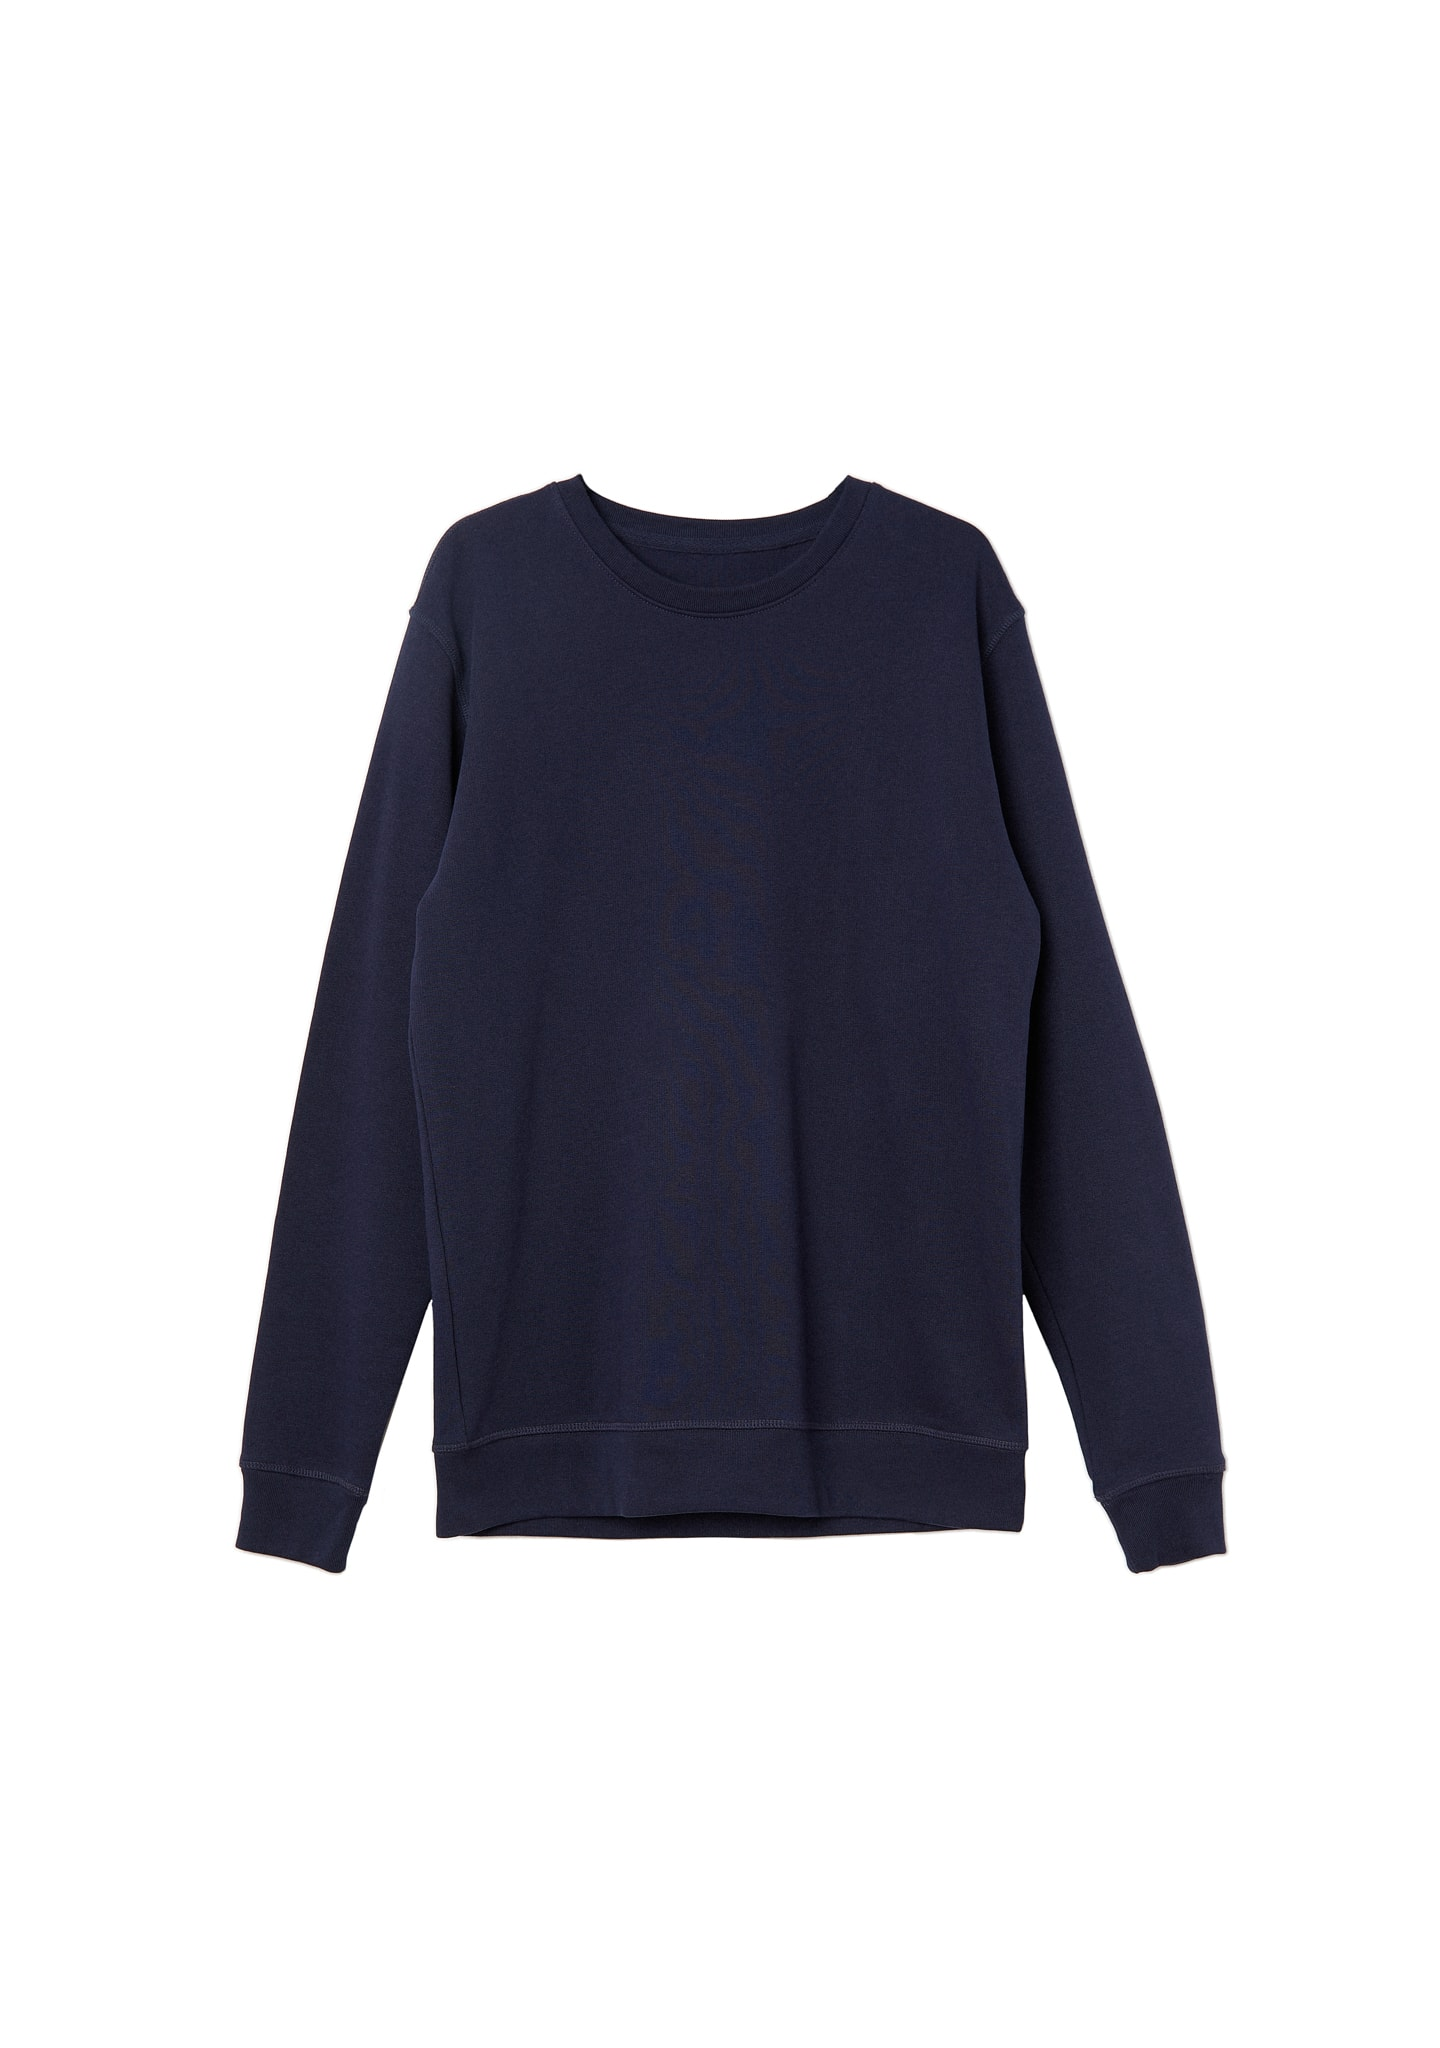 THIN COTTON-JERSEY SWEATSHIRT